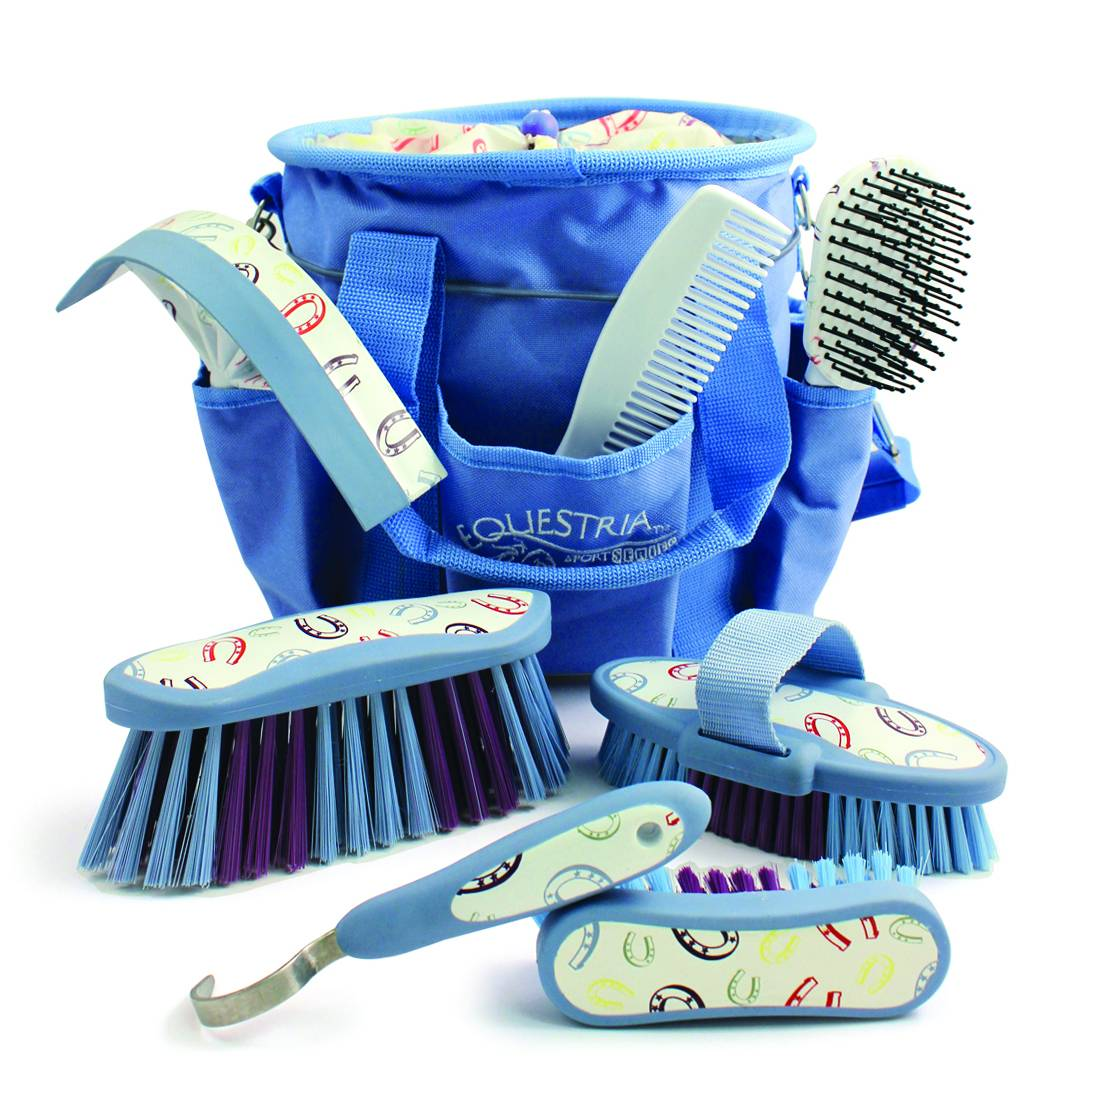 Equestria Sport HorseShoes 8-PC Deluxe Grooming Kit